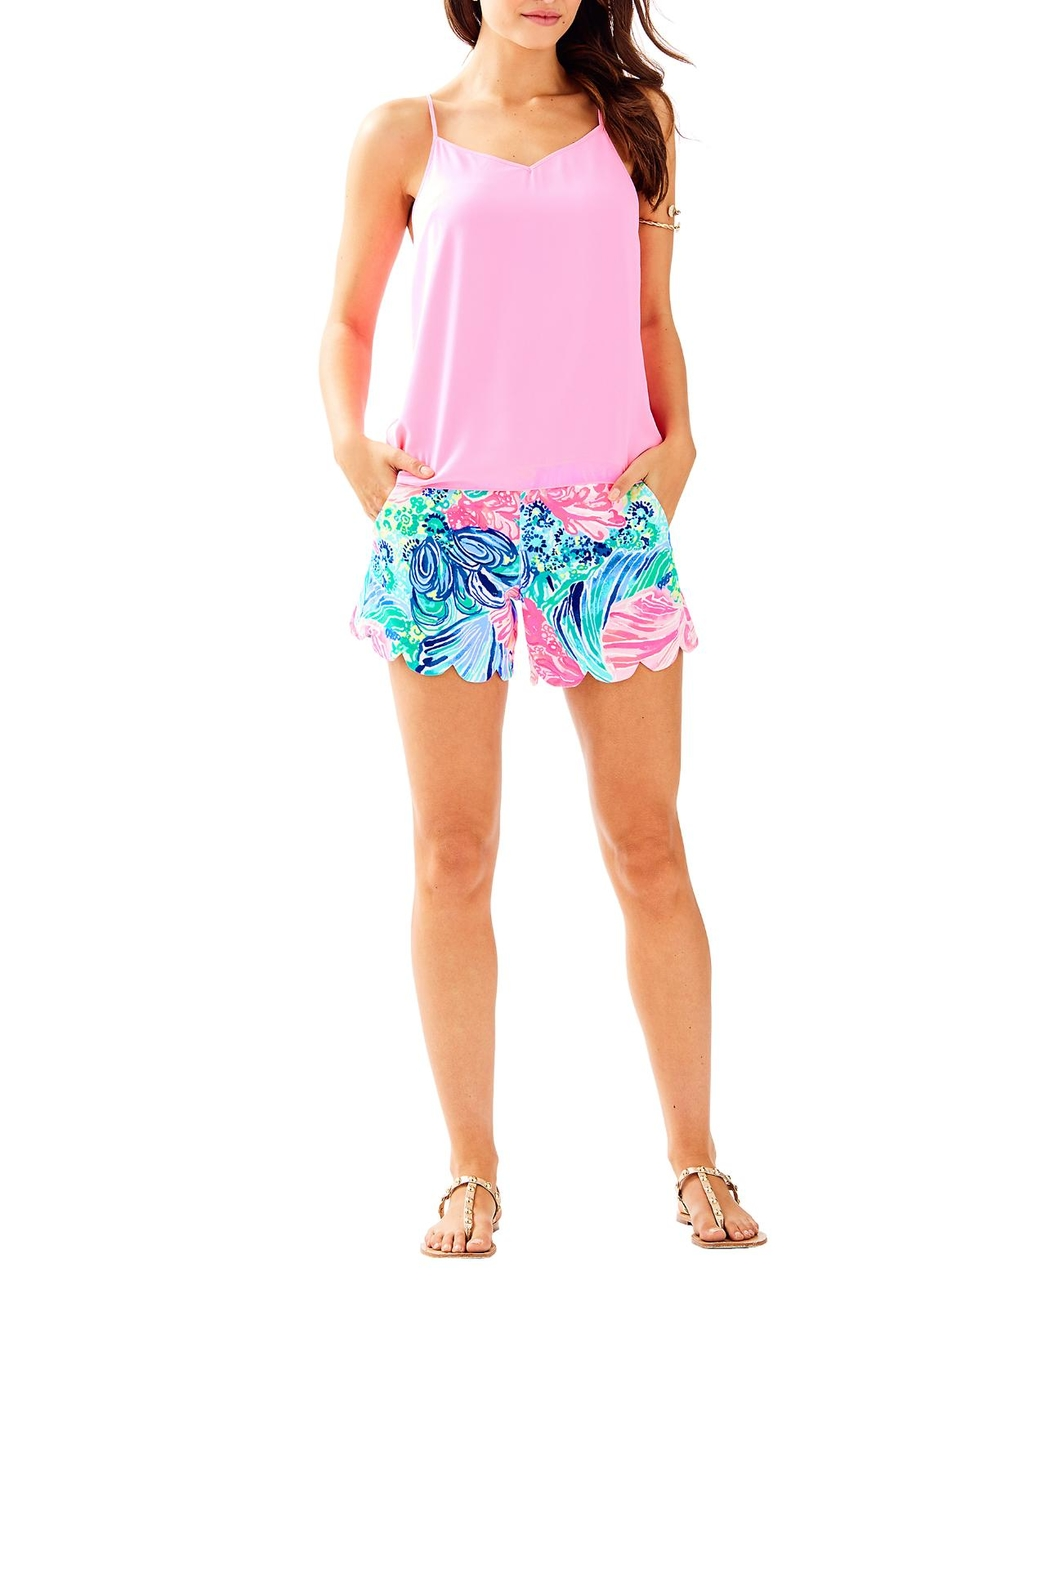 Lilly Pulitzer Dusk Top - Side Cropped Image